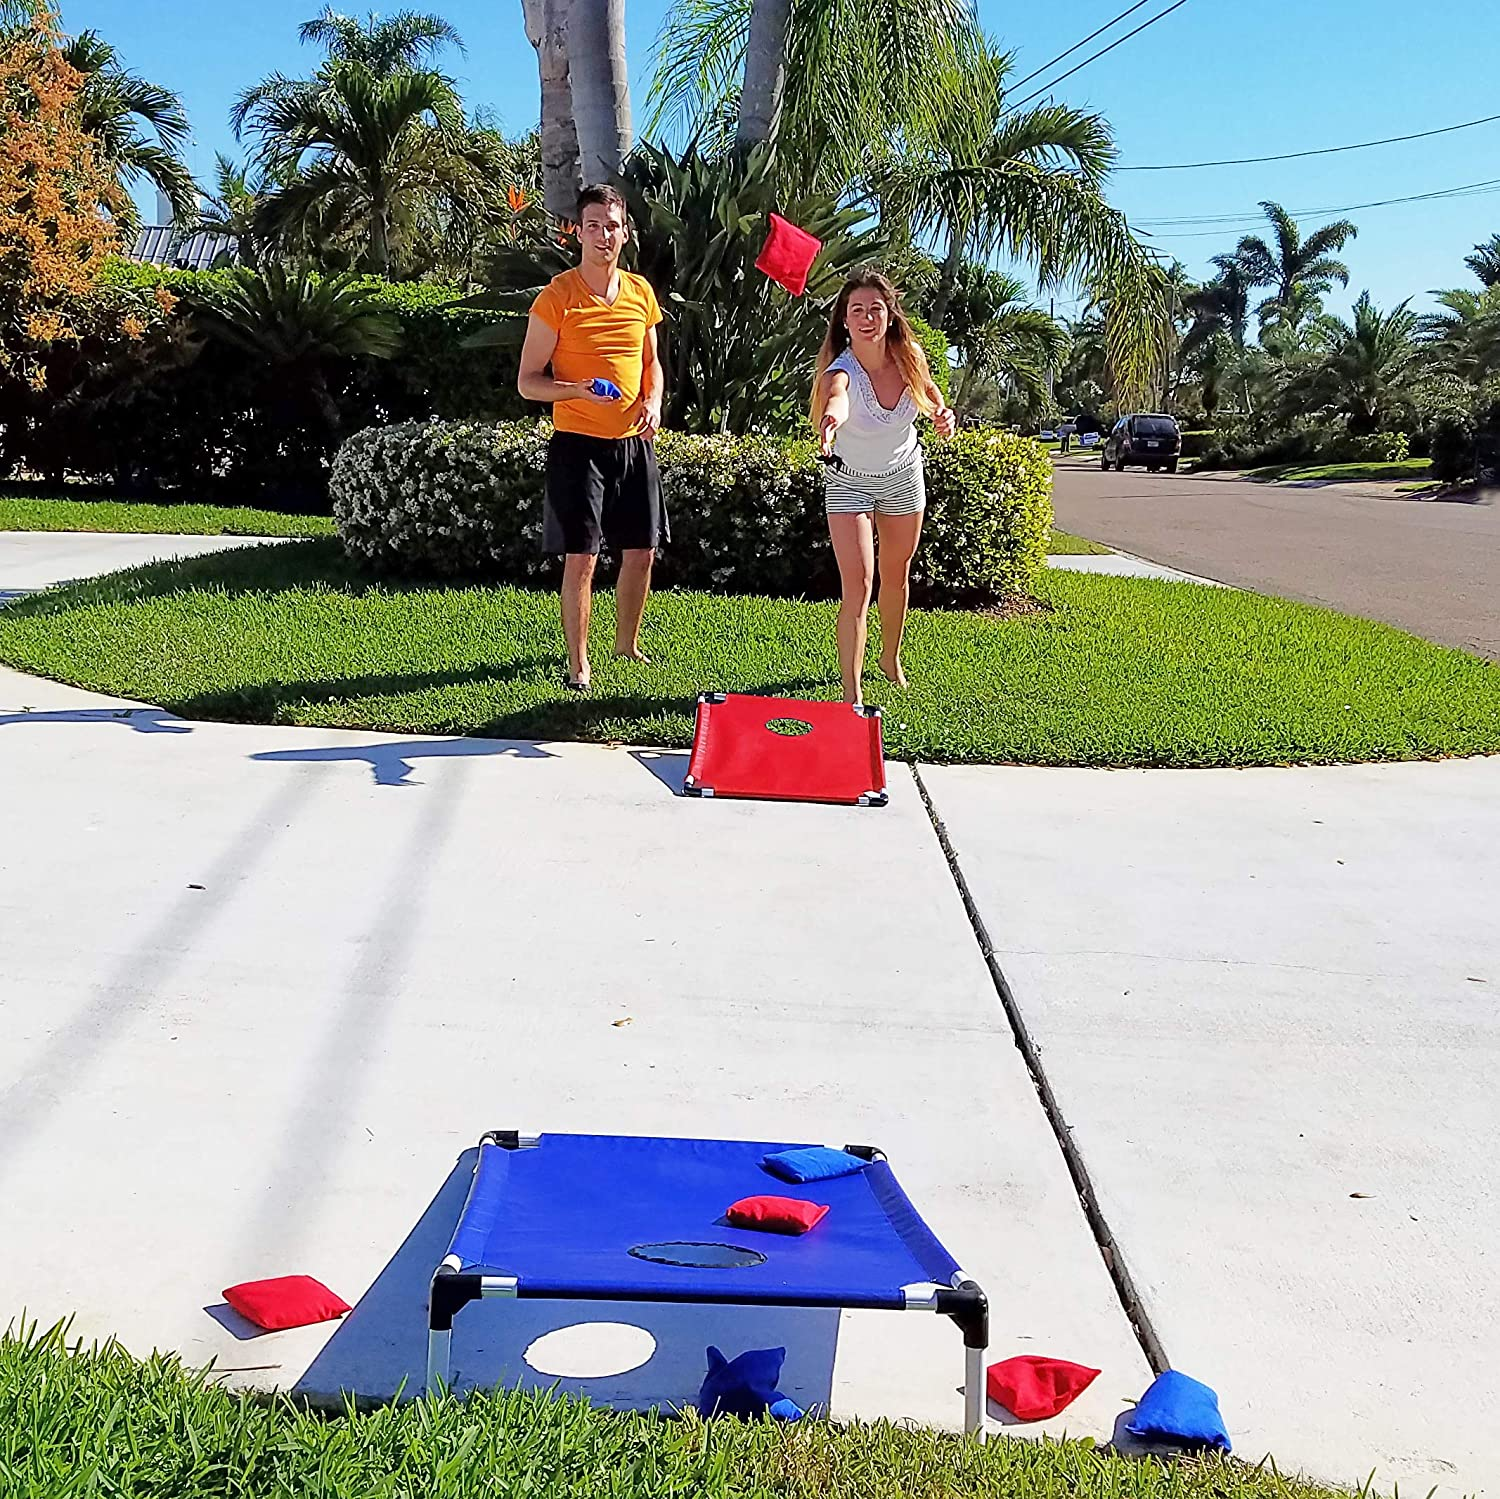 1 Blue Board Indoor//Outdoor Game Bean Bag Toss Game Set 1 Red 8 Bean Bags /& Travel Bag Funsparks Portable Cornhole Game